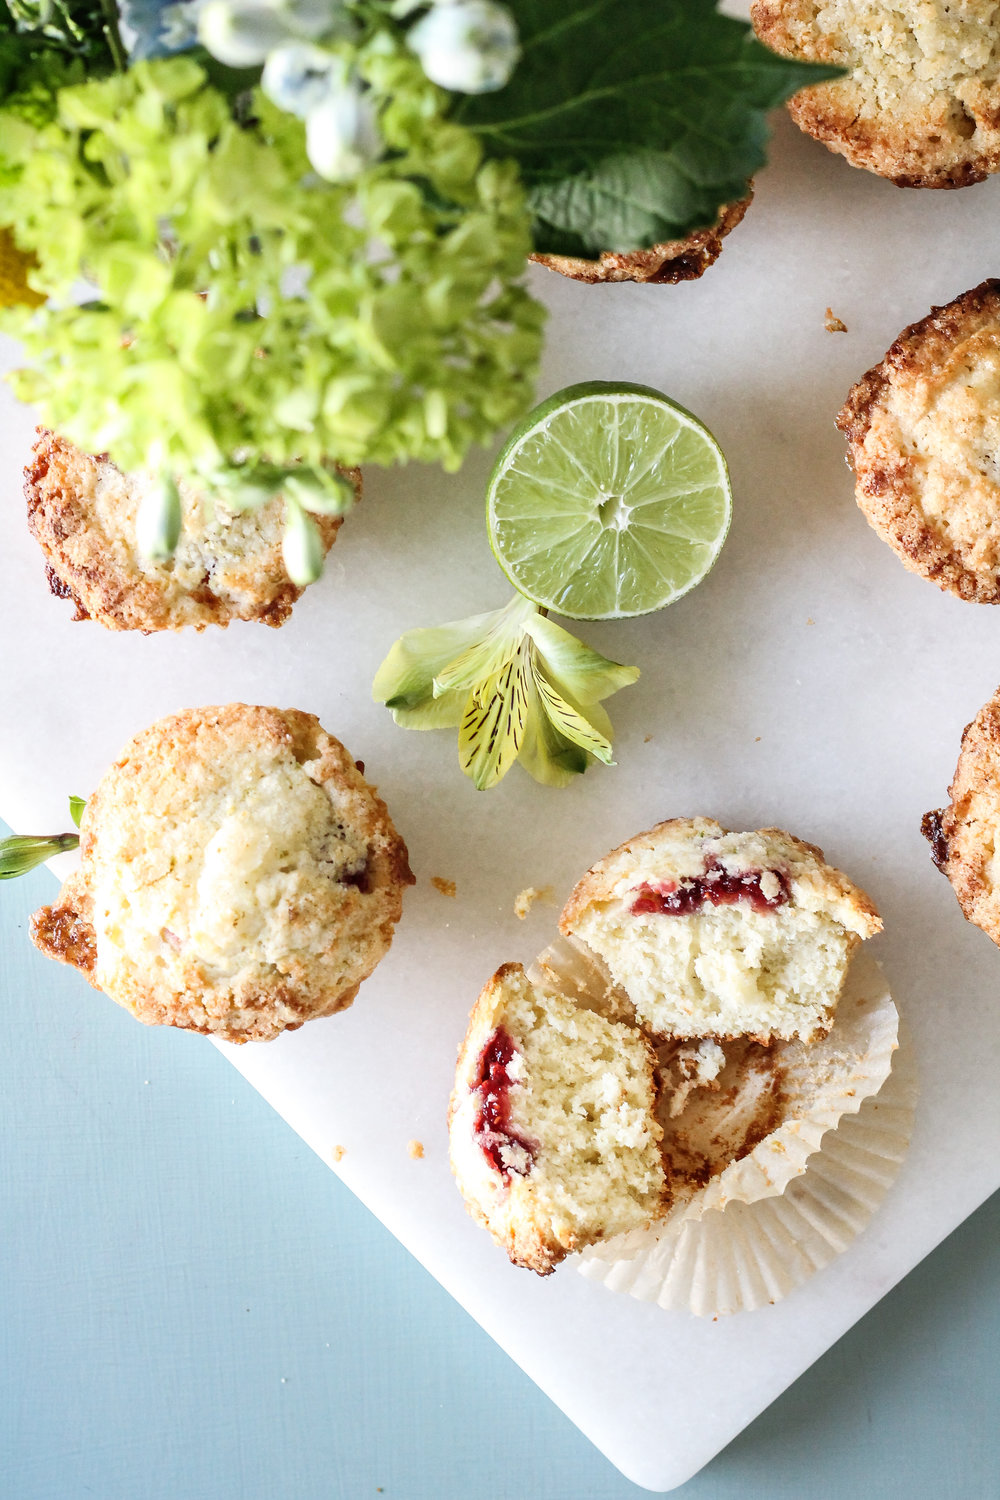 These tender Lime Sugar Streusel Muffins are filled with a tart layer of Raspberry Preserves and covered with a crisp, zesty streusel - a perfect way to start the day!  Find the recipe on www.pedanticfoodie.com!These tender Lime Sugar Streusel Muffins are filled with a tart layer of Raspberry Preserves and covered with a crisp, zesty streusel - a perfect way to start the day!  Find the recipe on www.pedanticfoodie.com!